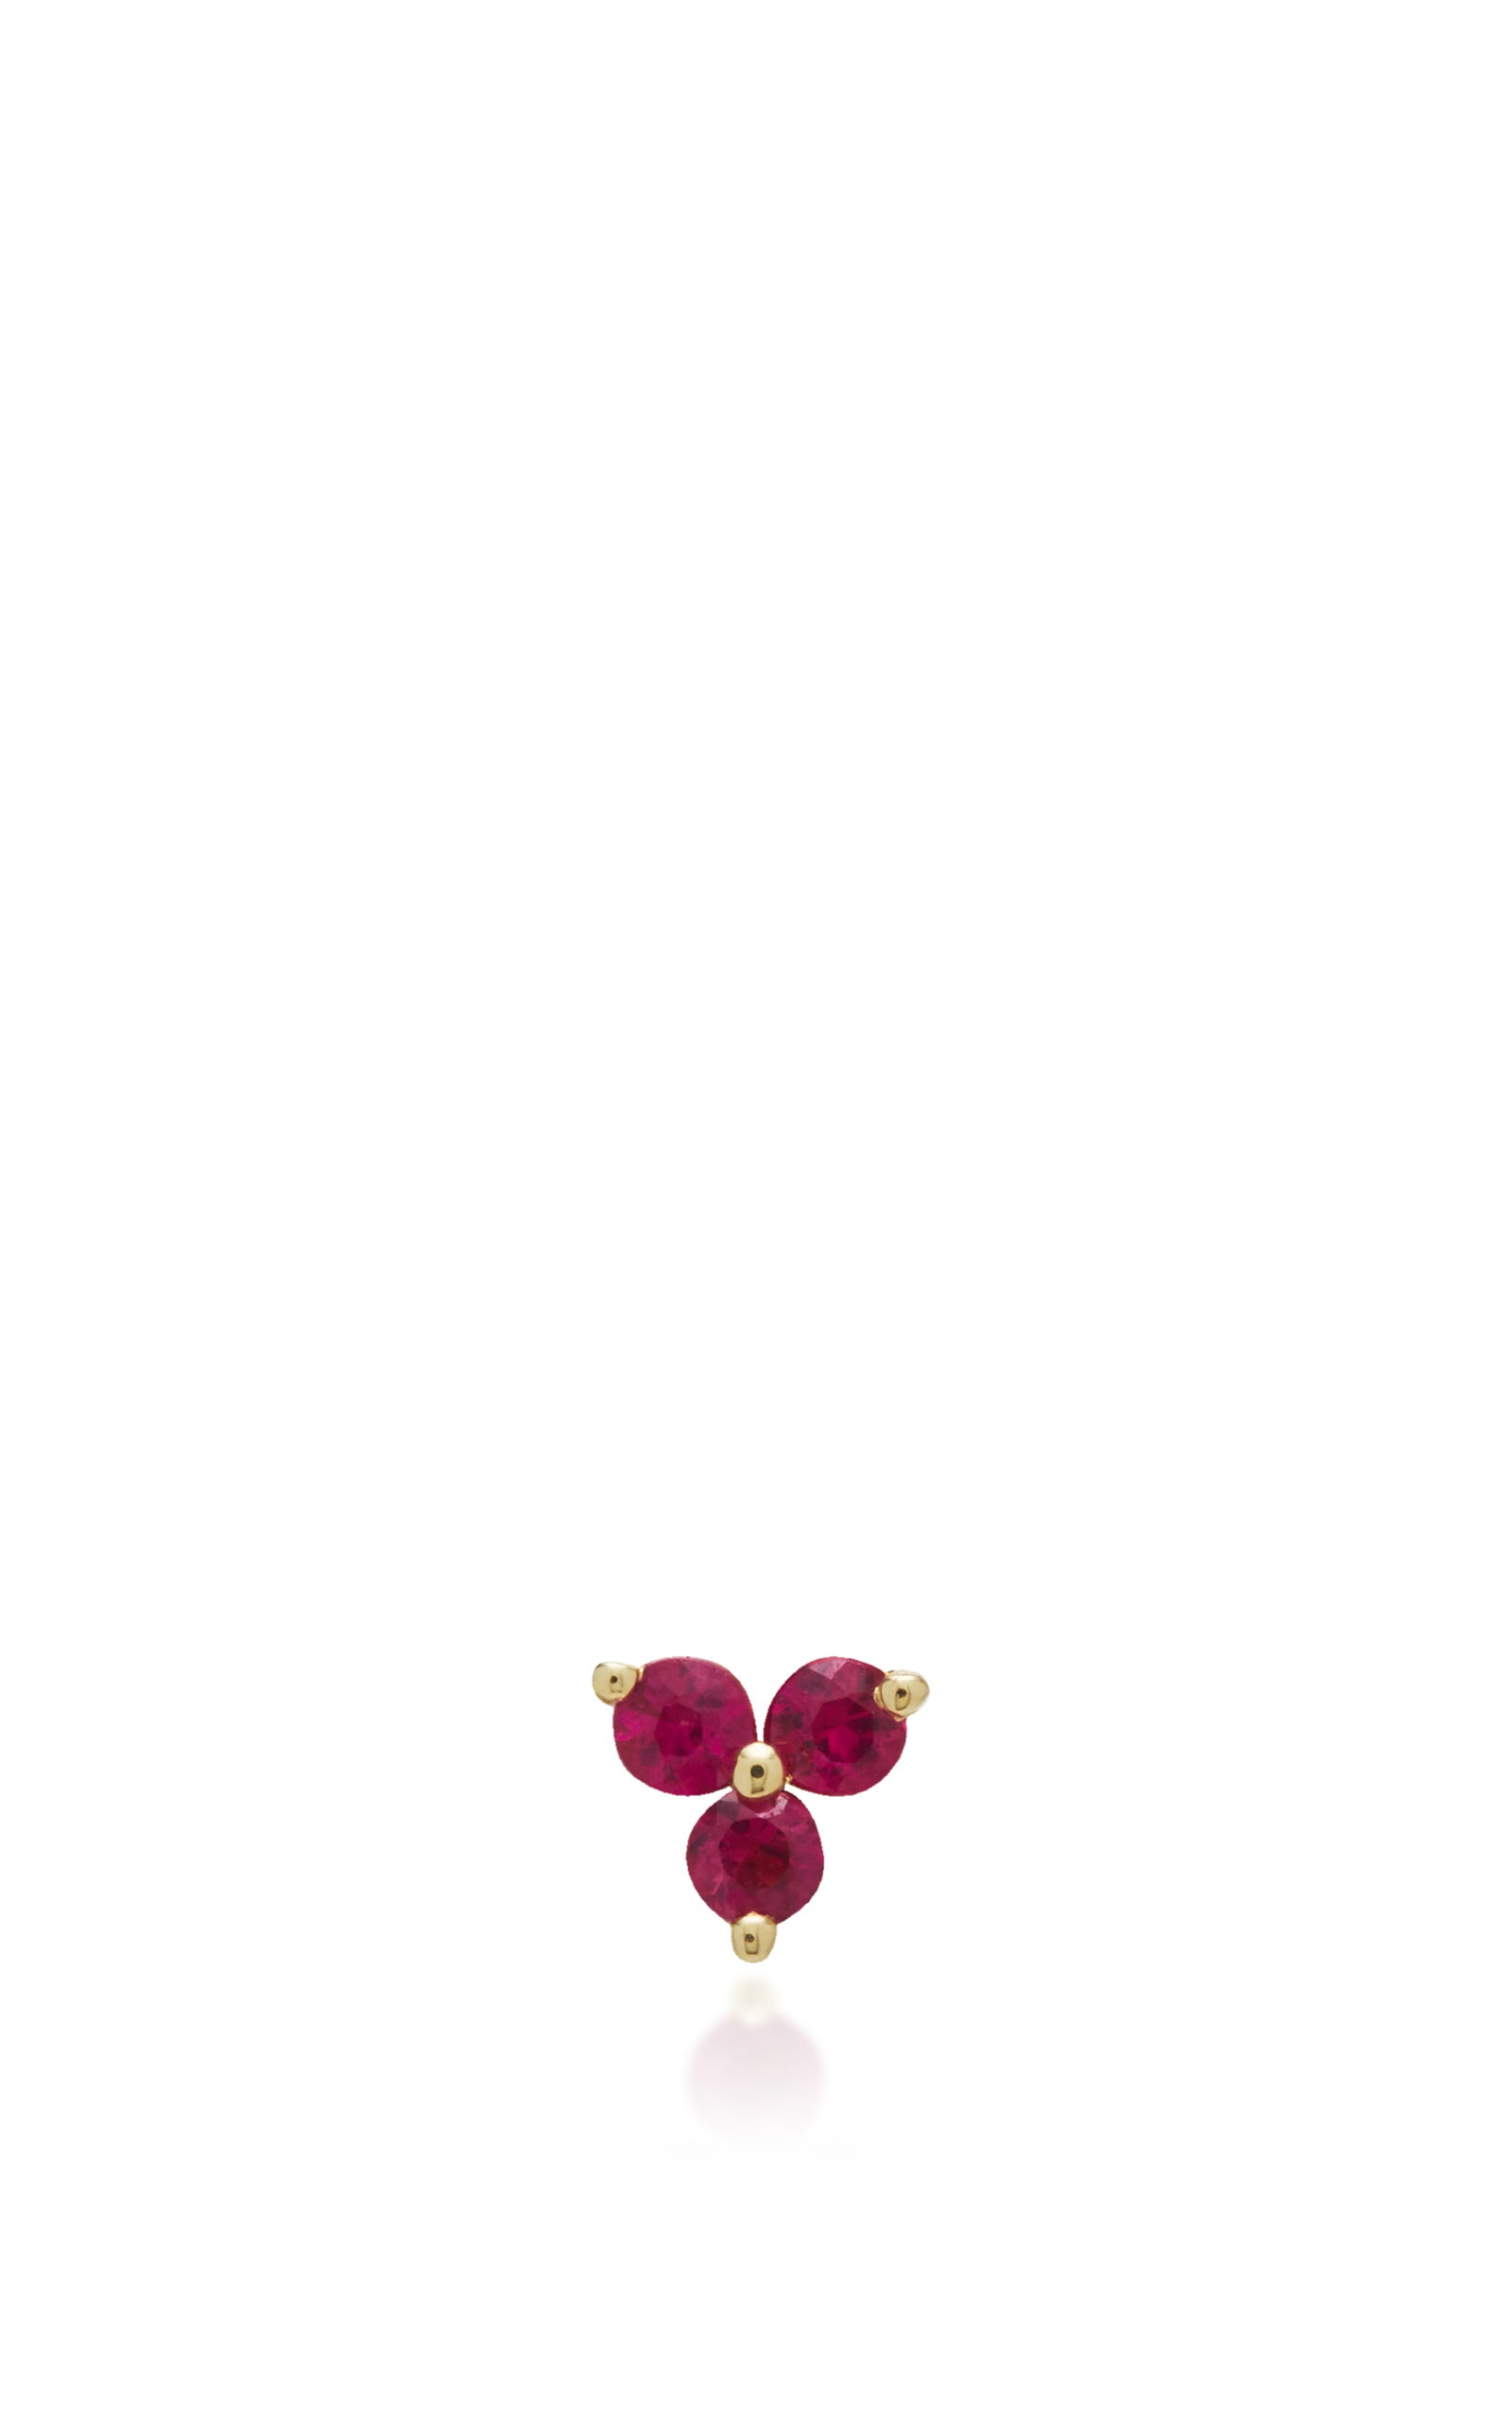 ruby created laura ashley earrings p diamond stud hot